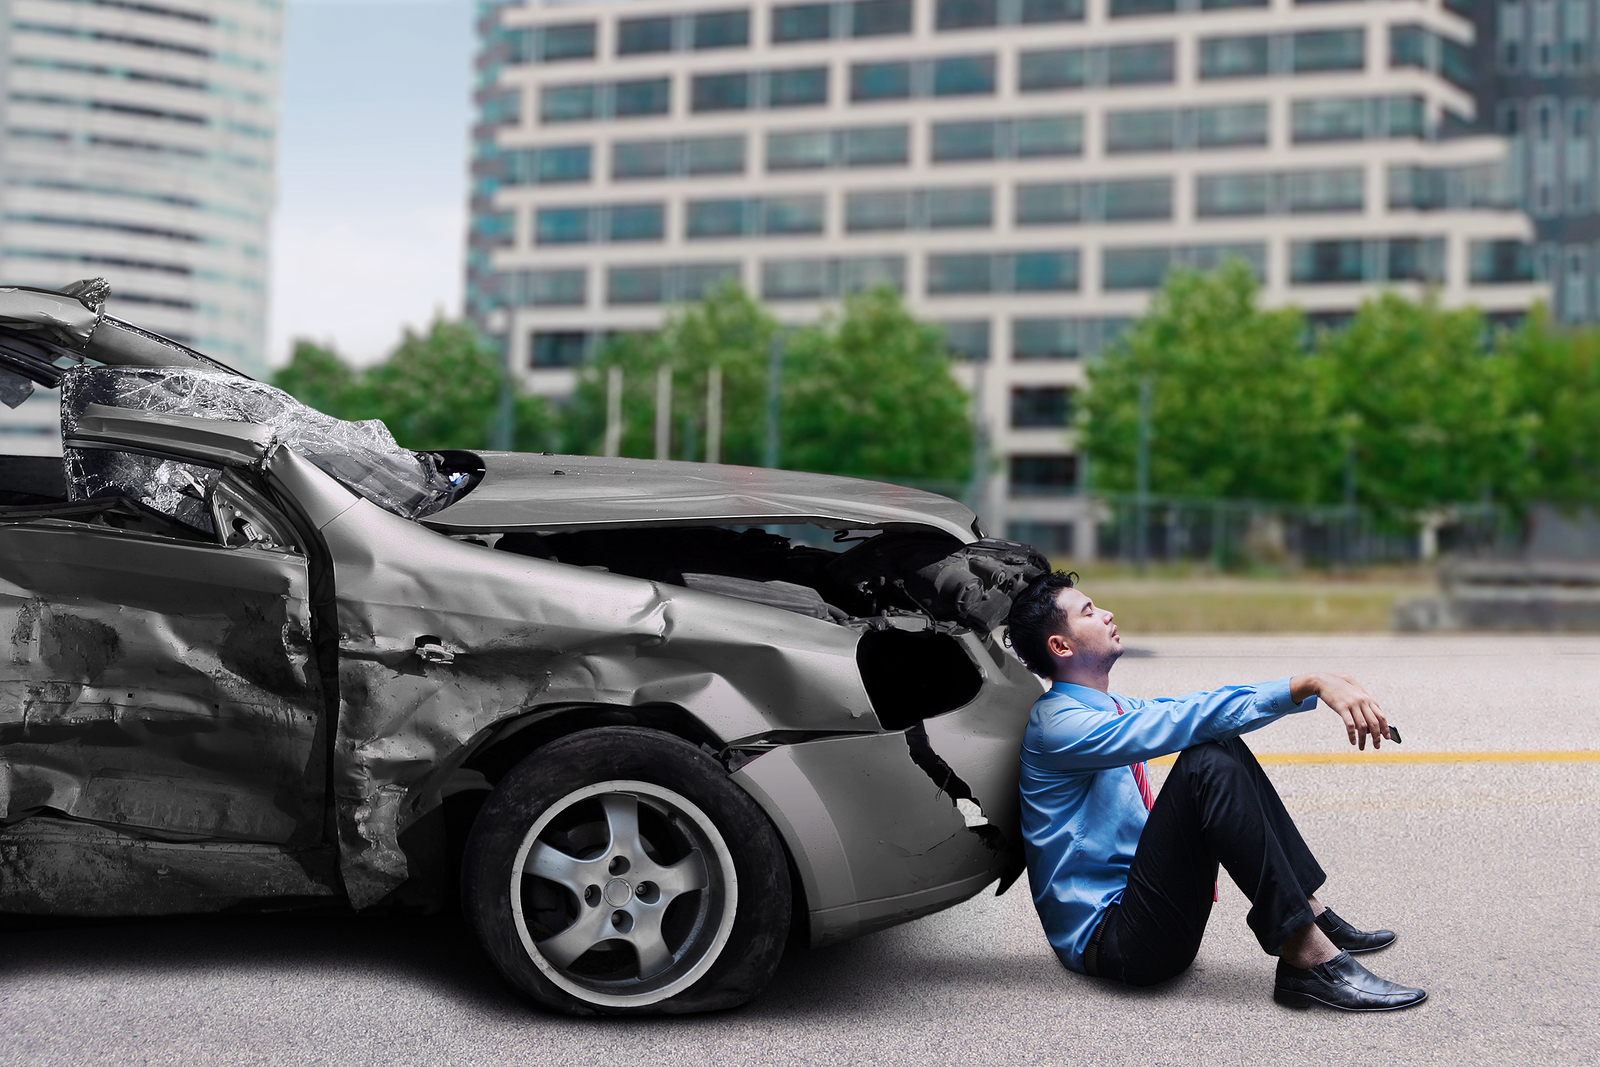 Auto accident chiropractic services